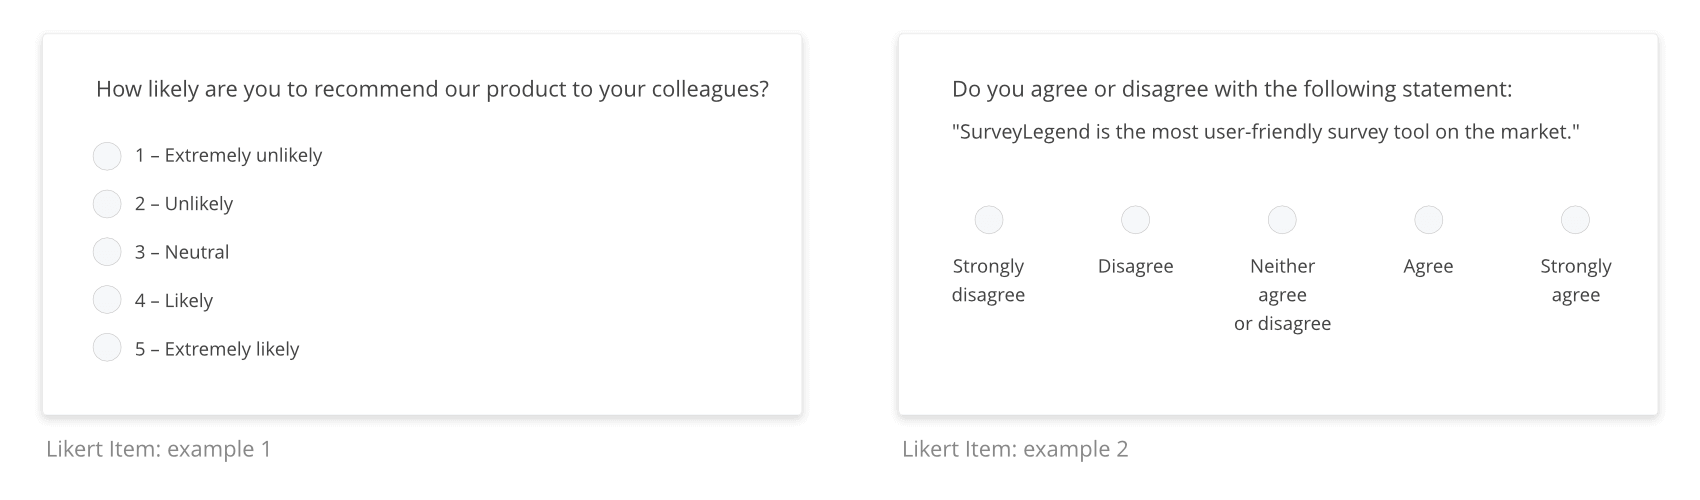 These are examples of Likert Items. Likert Items could look visually different.